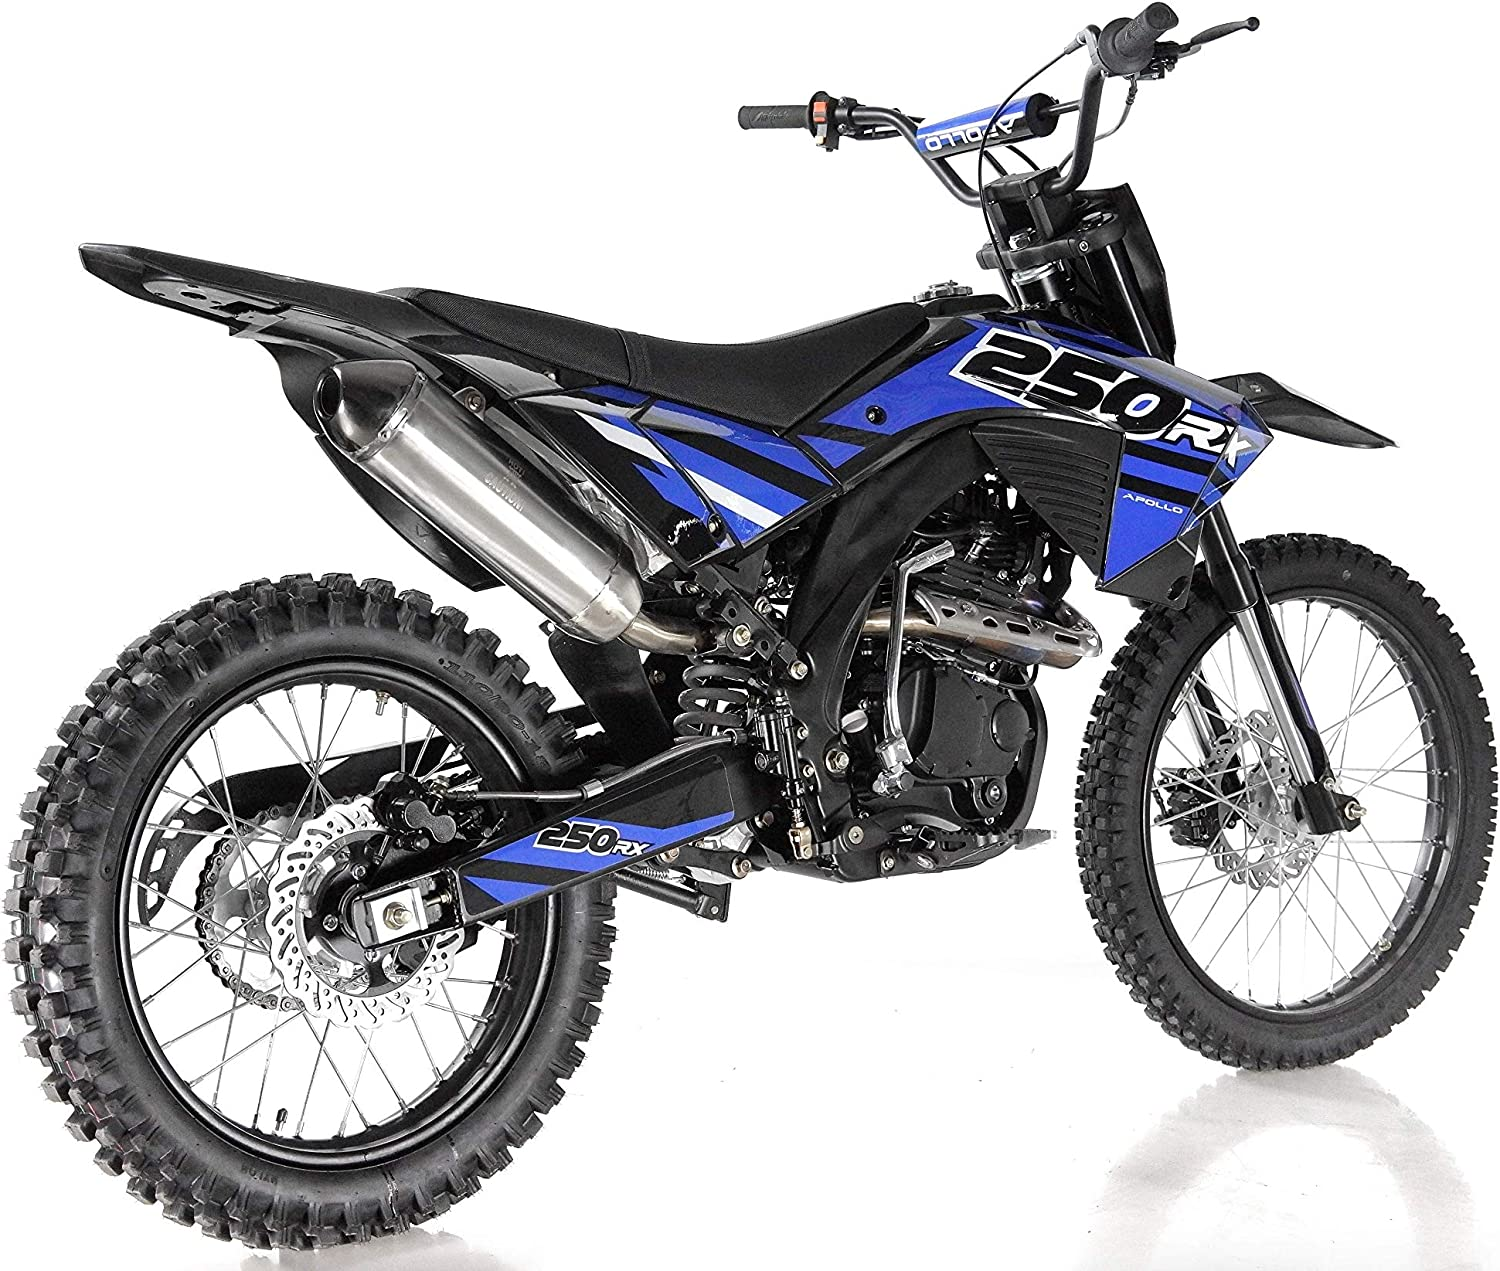 SMART DEALSNOW Brings BRAND NEW APOLLO Dirt Bike 250cc AGB-36 APOLLO with Standard Manual Clutch MIDNIGHT BLACK Color